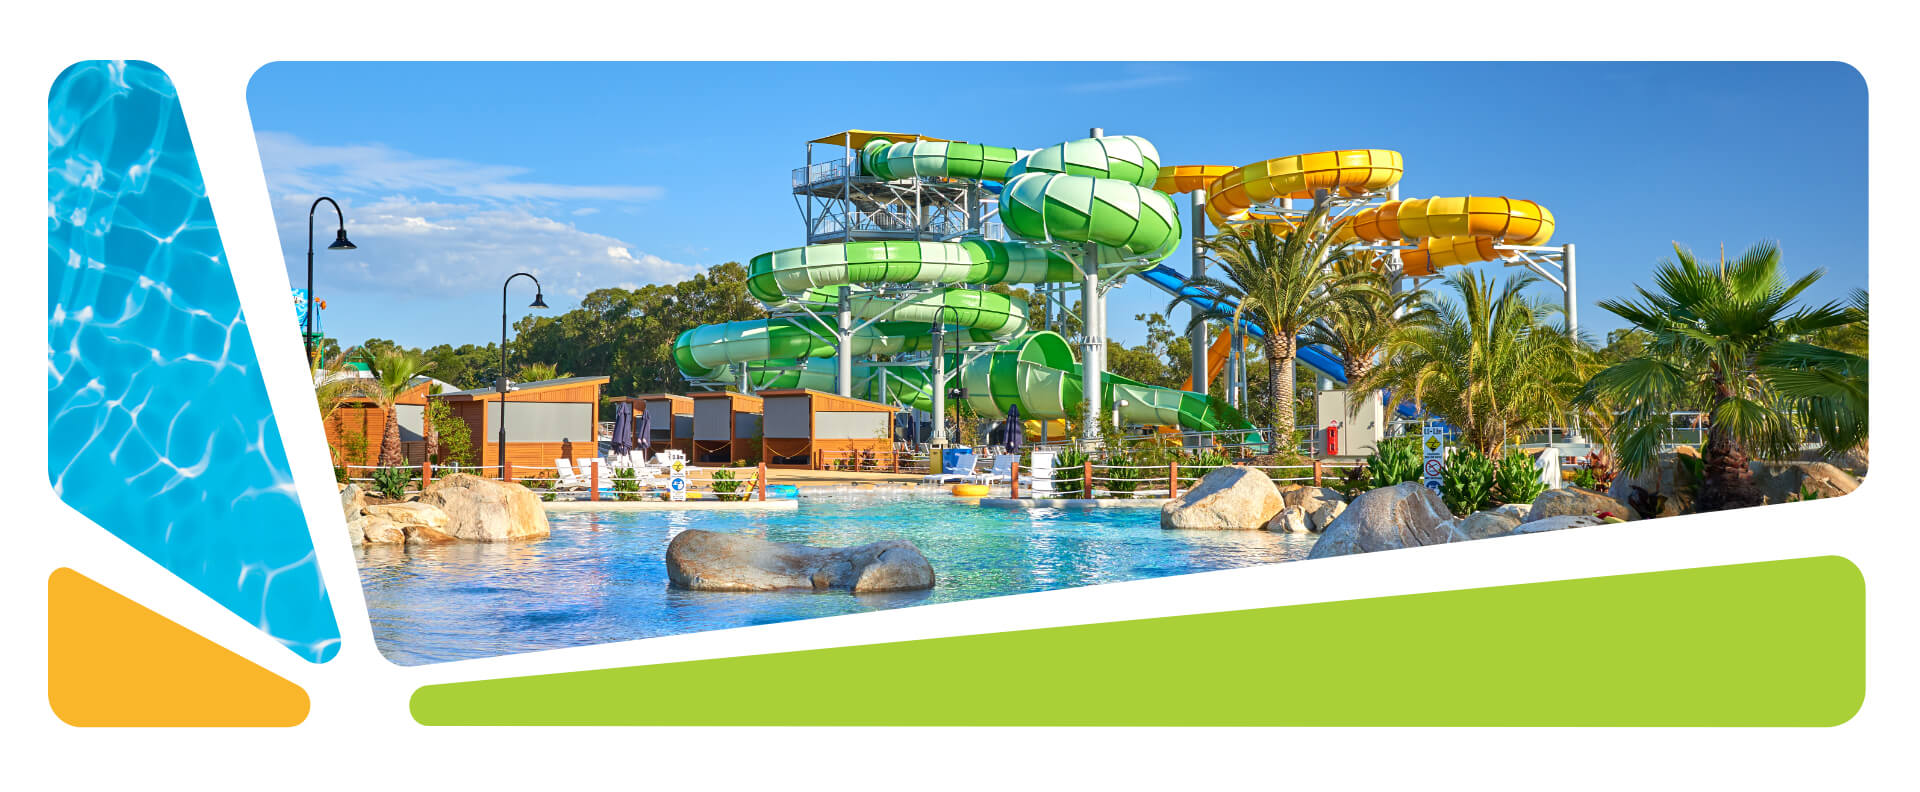 Парк мира Oasis Springs The Best Water Park In Melbourne Gumbuya World